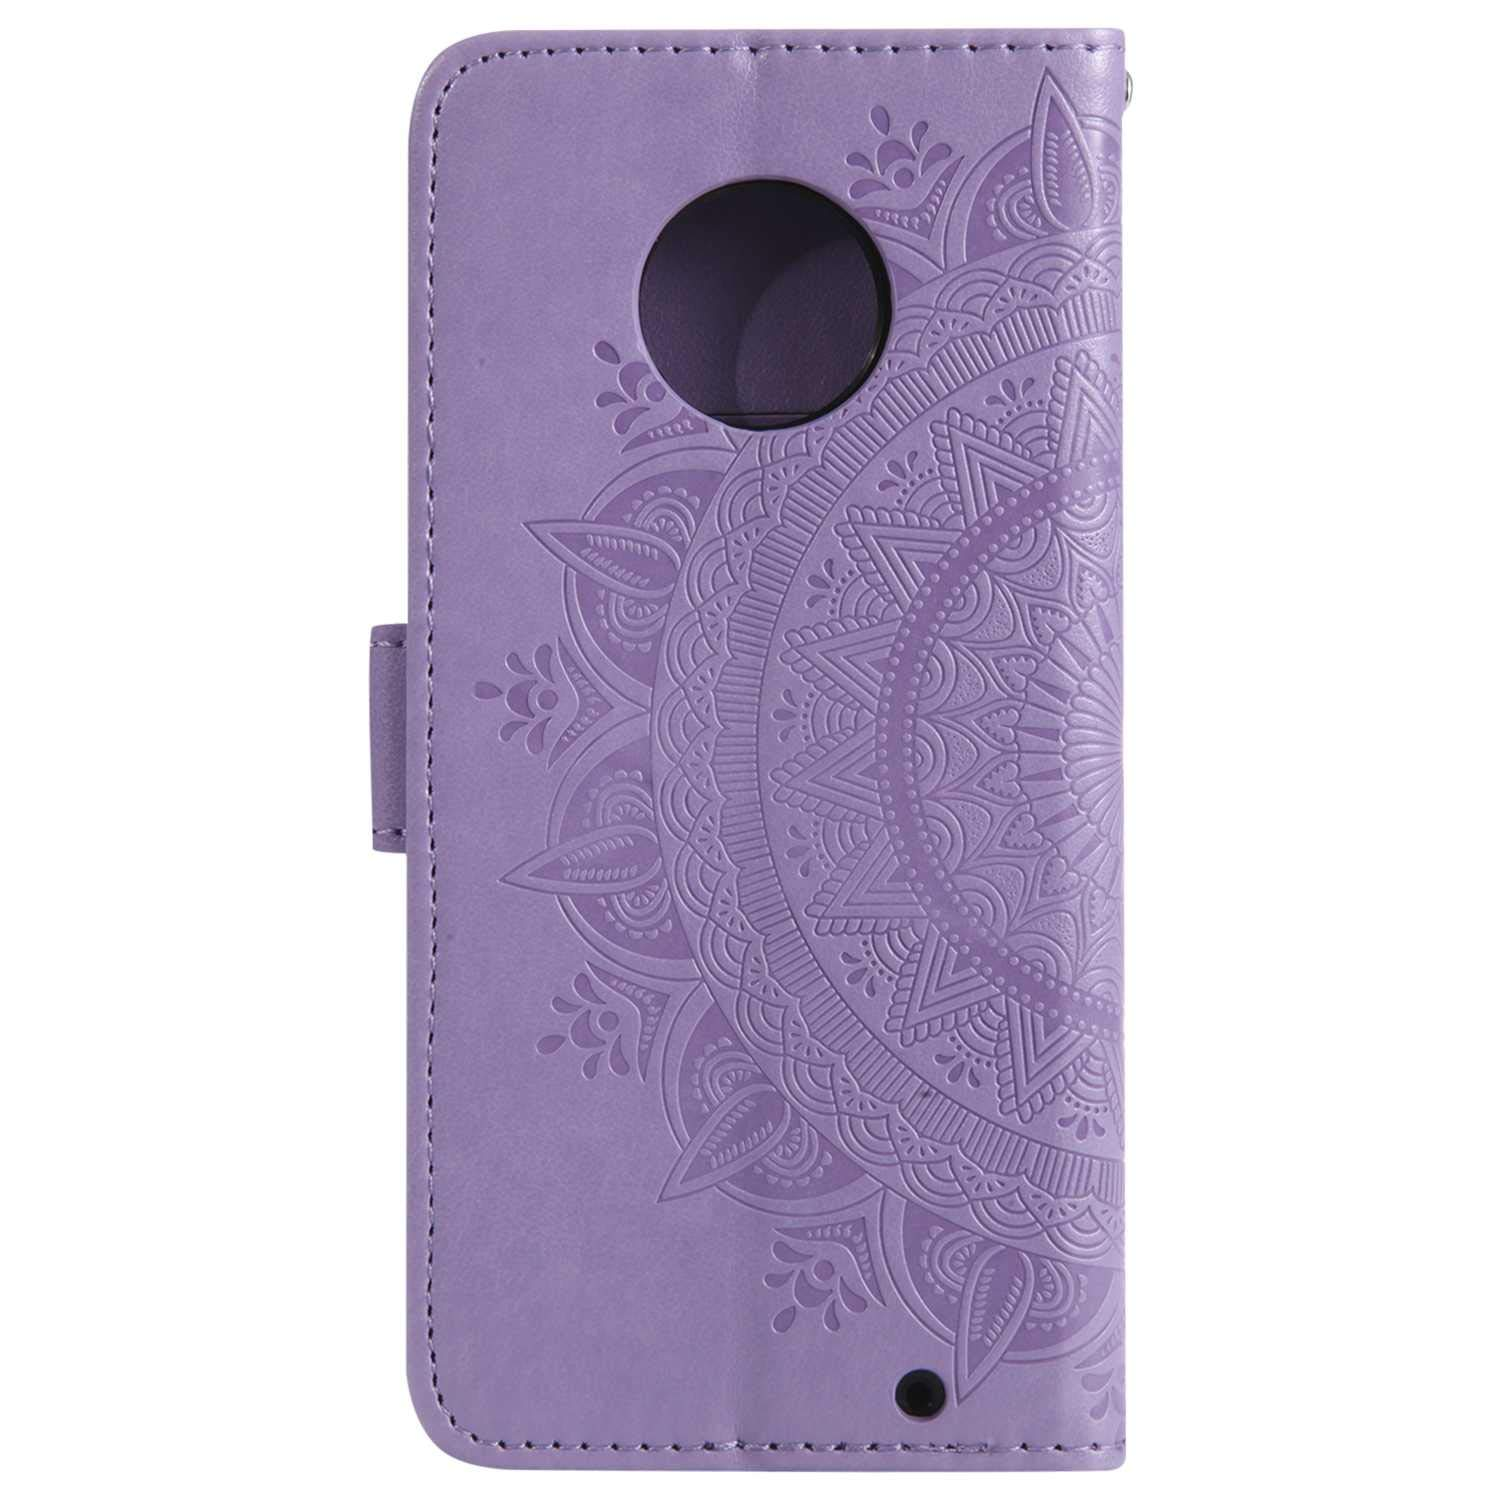 Card Slots Moto G6 Plus Case The Grafu Leather Case Kickstand Function Premium Wallet Case with Blue Flip Notebook Cover for Moto G6 Plus